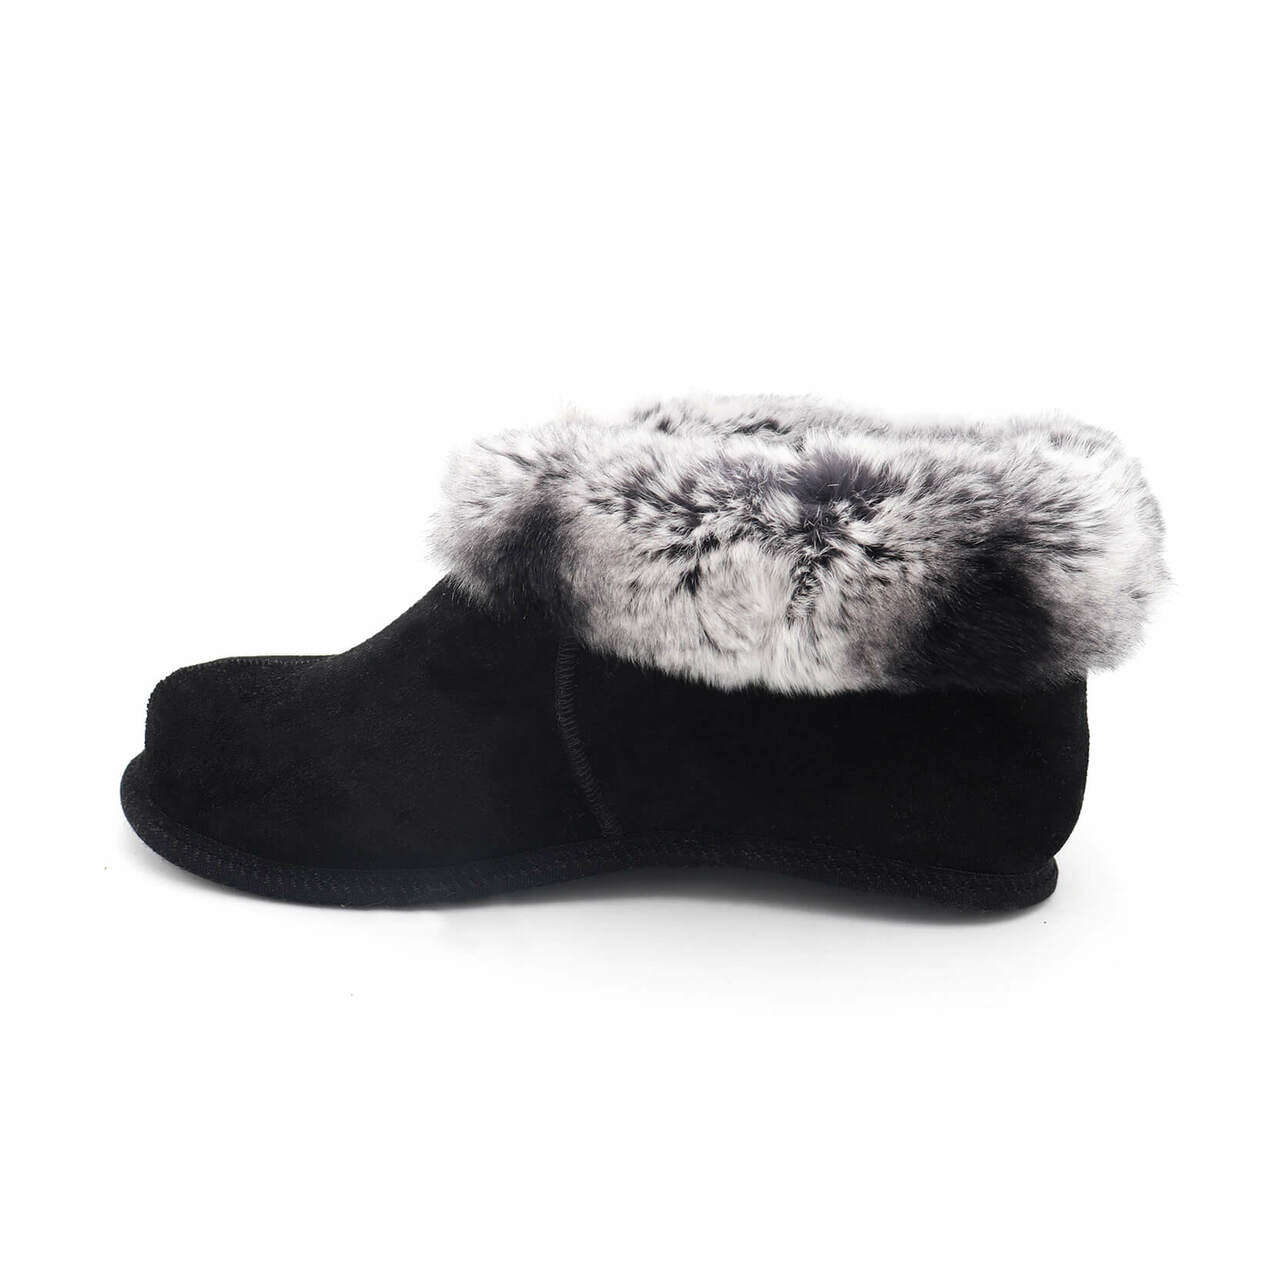 Soft Sole Shearling Slippers with Rex Rabbit Fur Trim